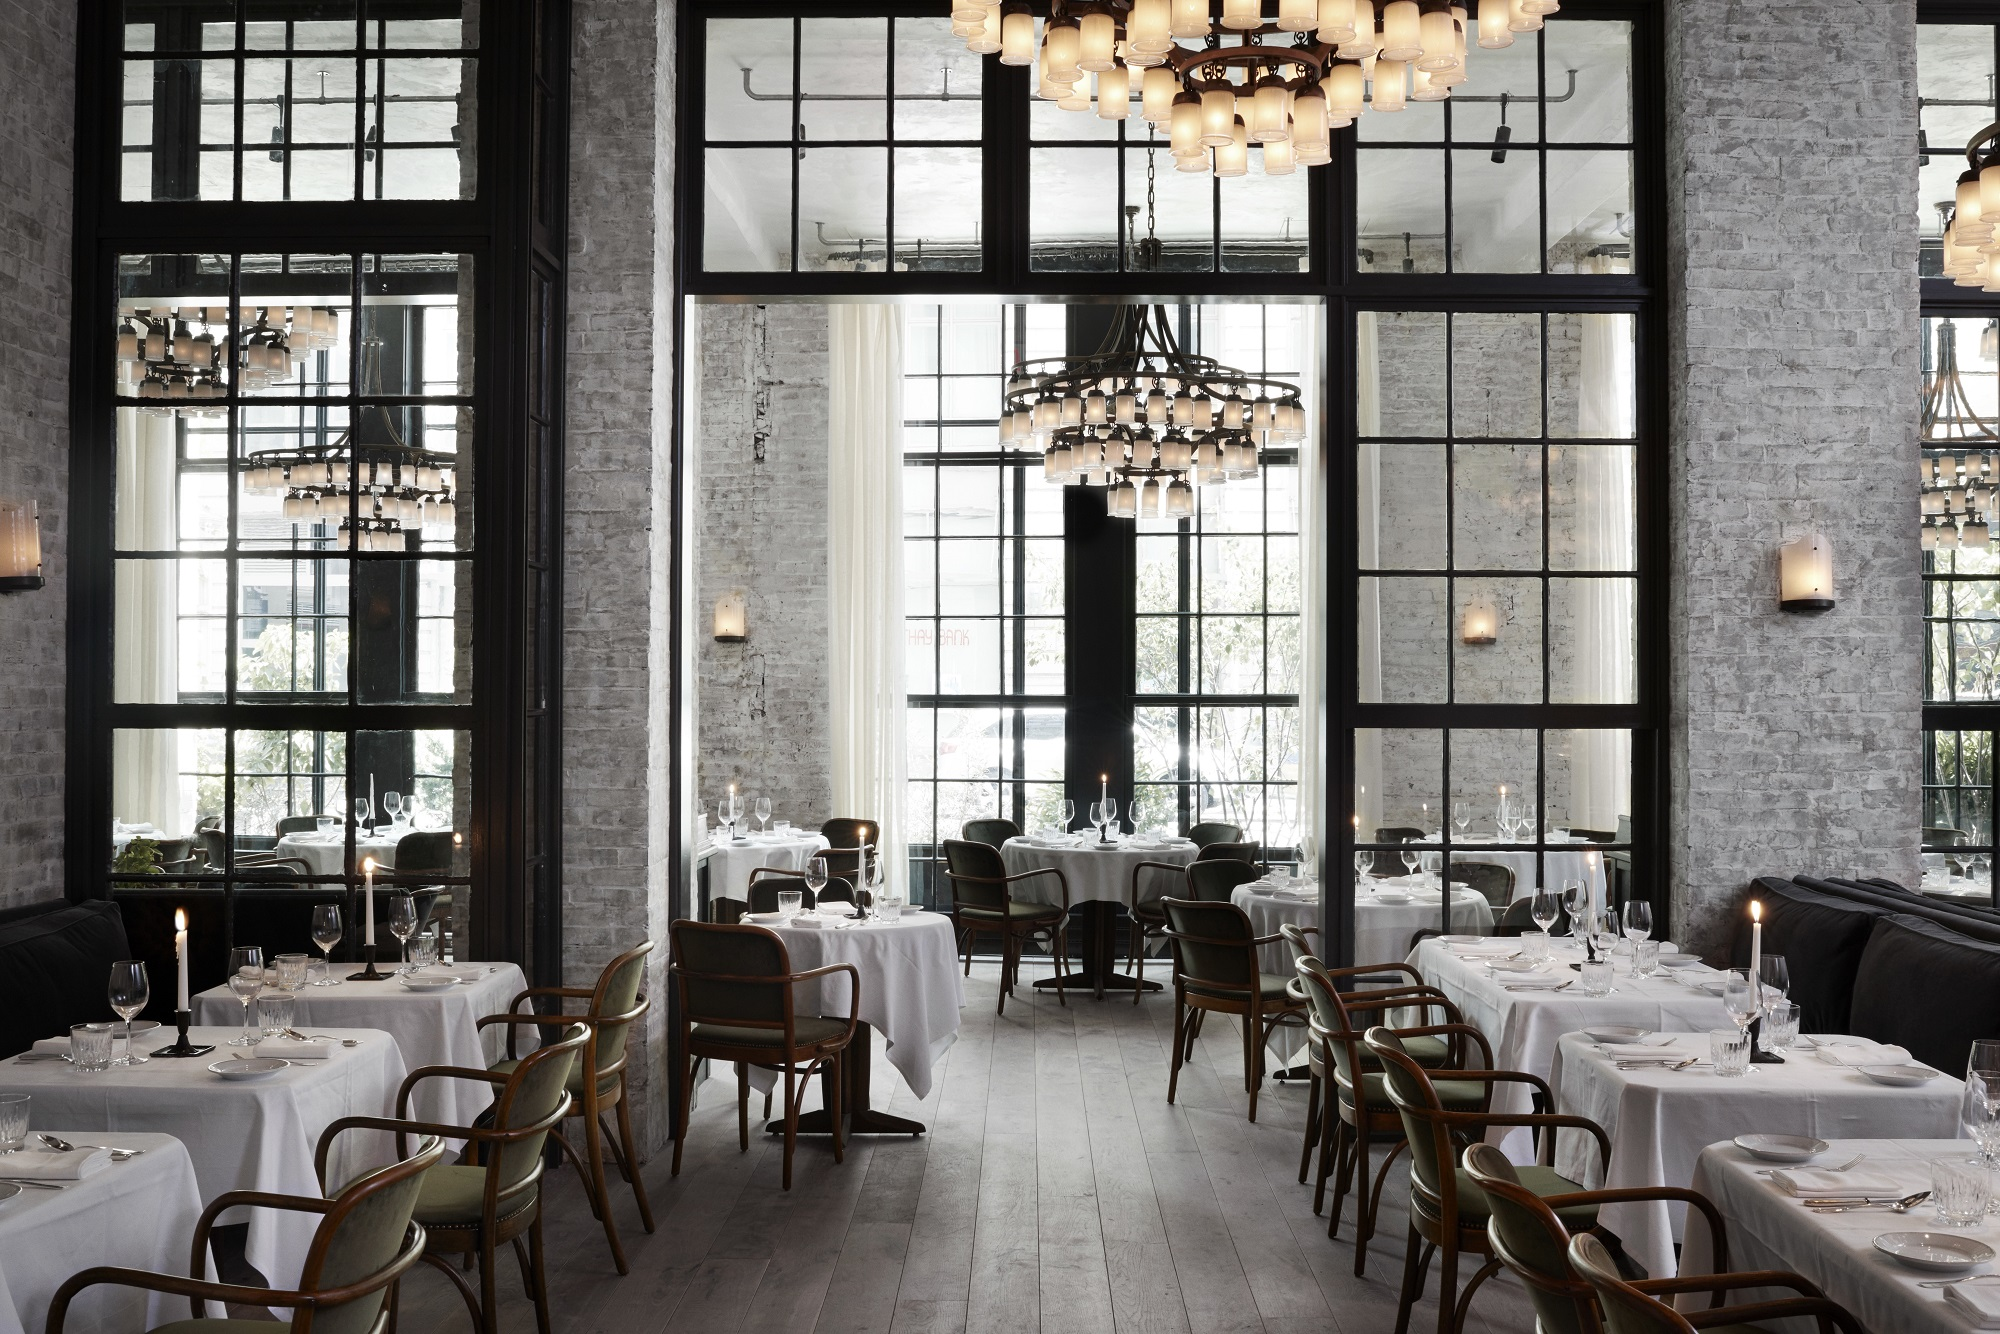 Take a look at Roman & Williams – Designed Le Coucou Restaurant